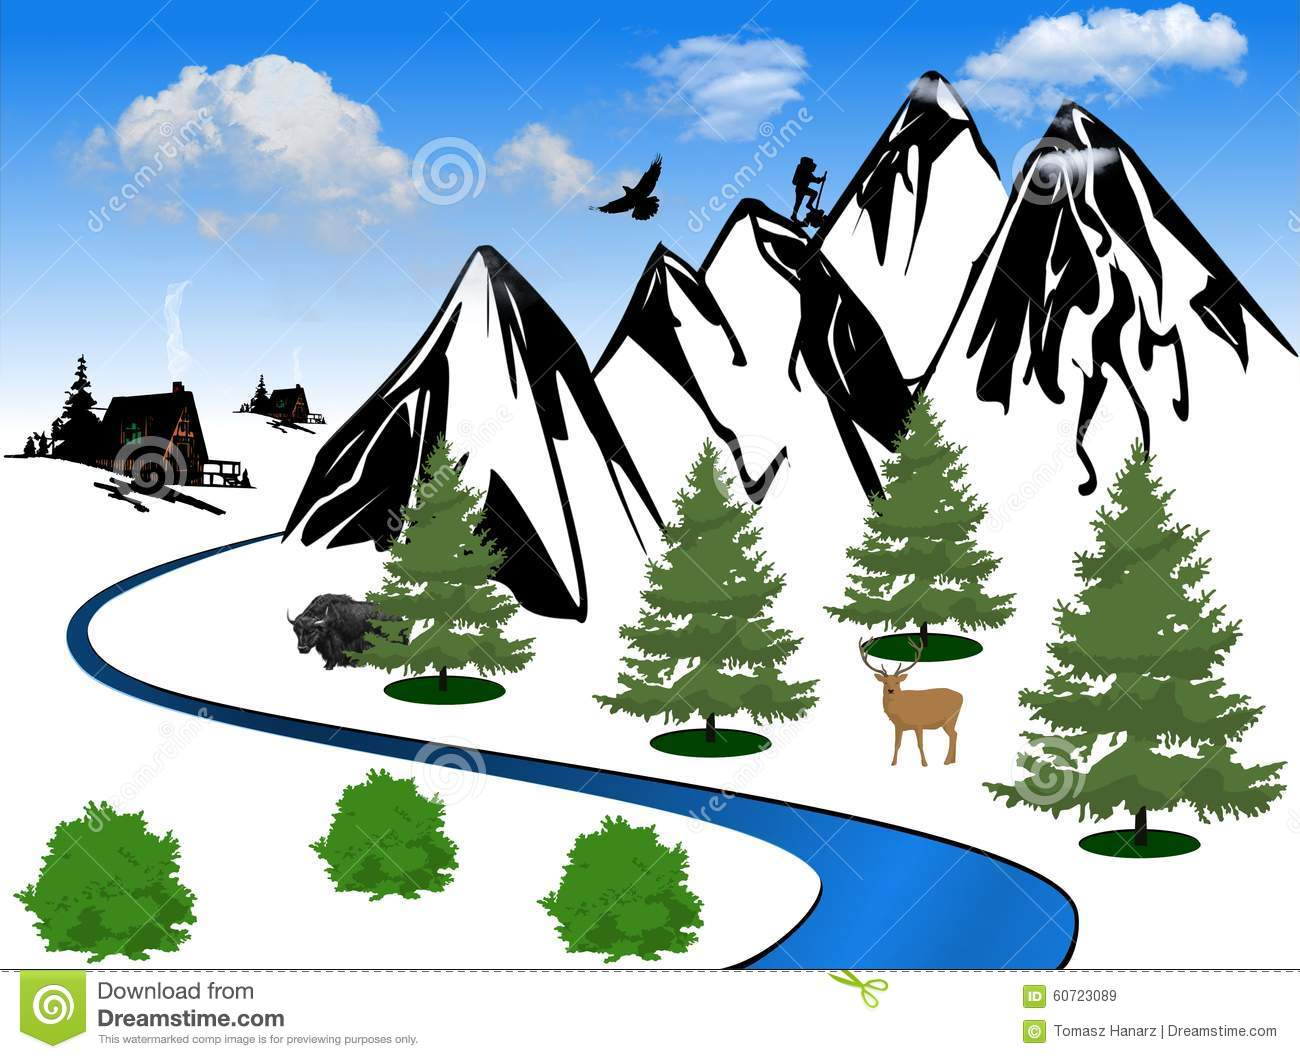 Scenic clipart mountain valley #14